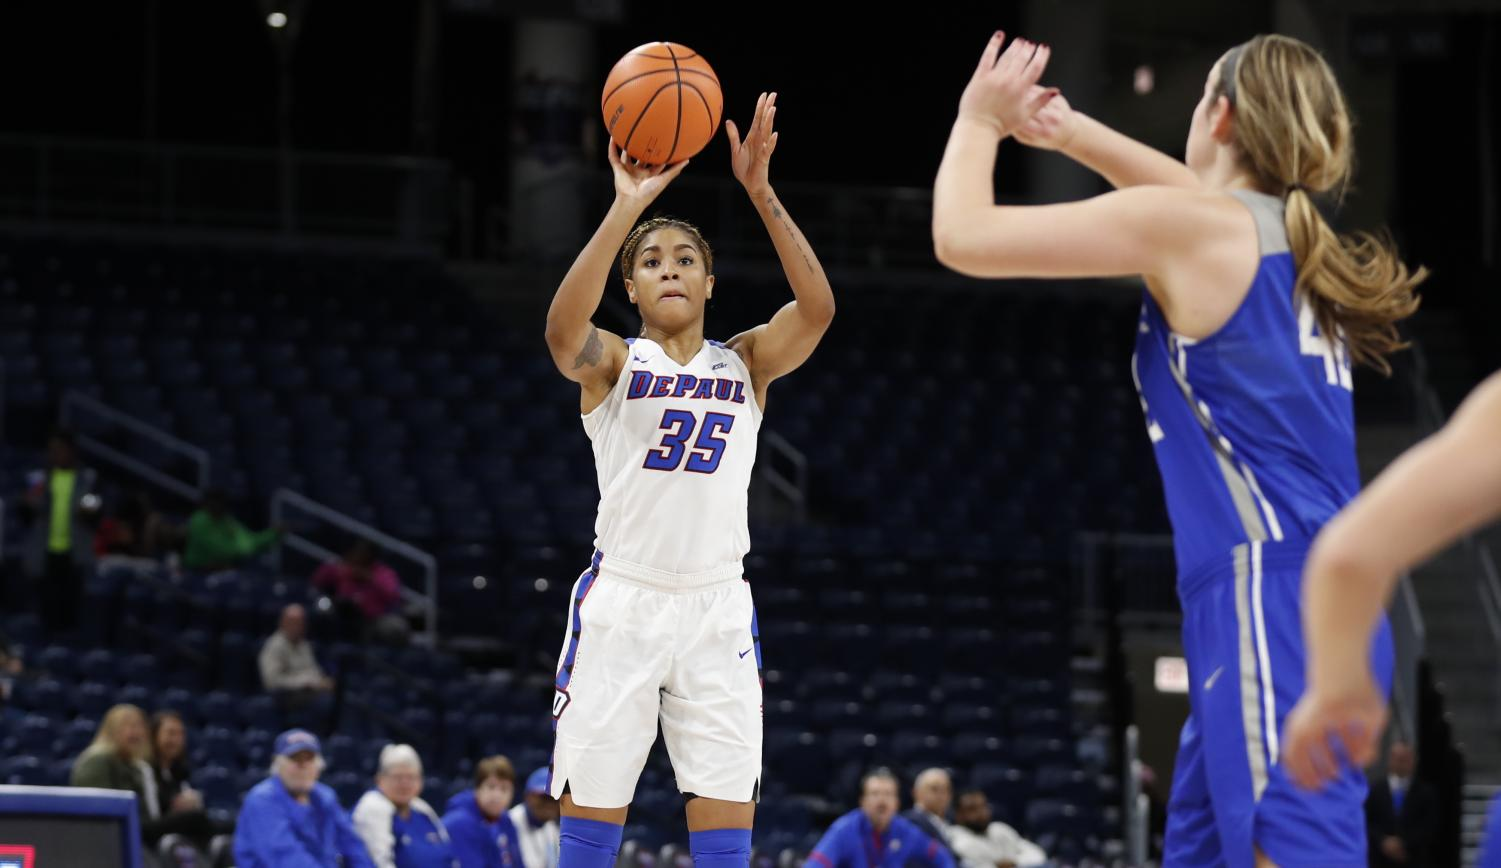 Mart'e Grays dropped a career high 25 points Friday night. (Photo courtesy of DePaul Athletics)